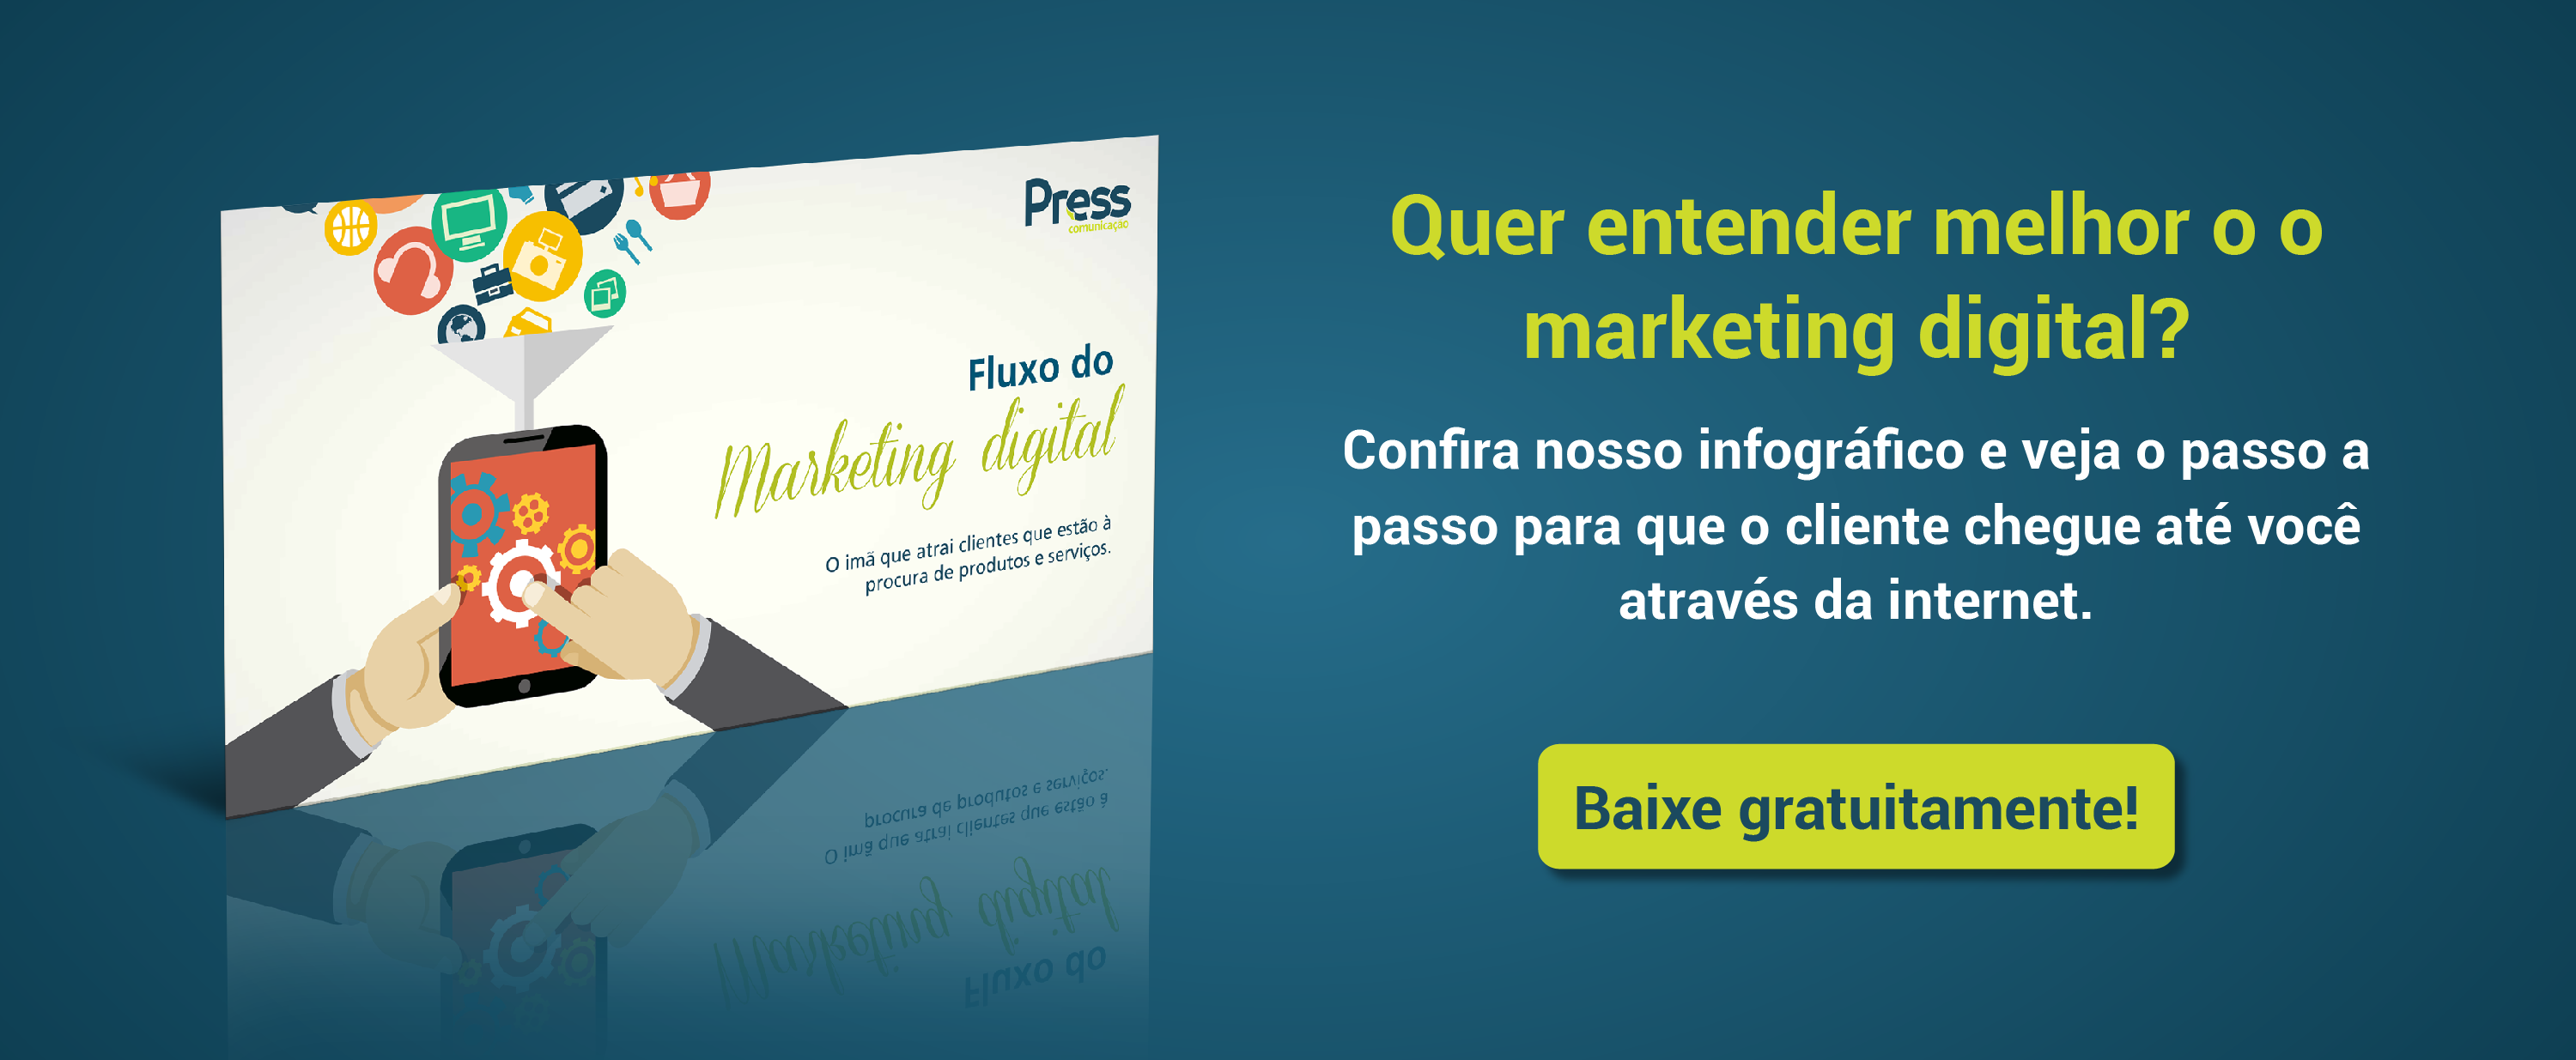 Veja o fluxo do marketing digital